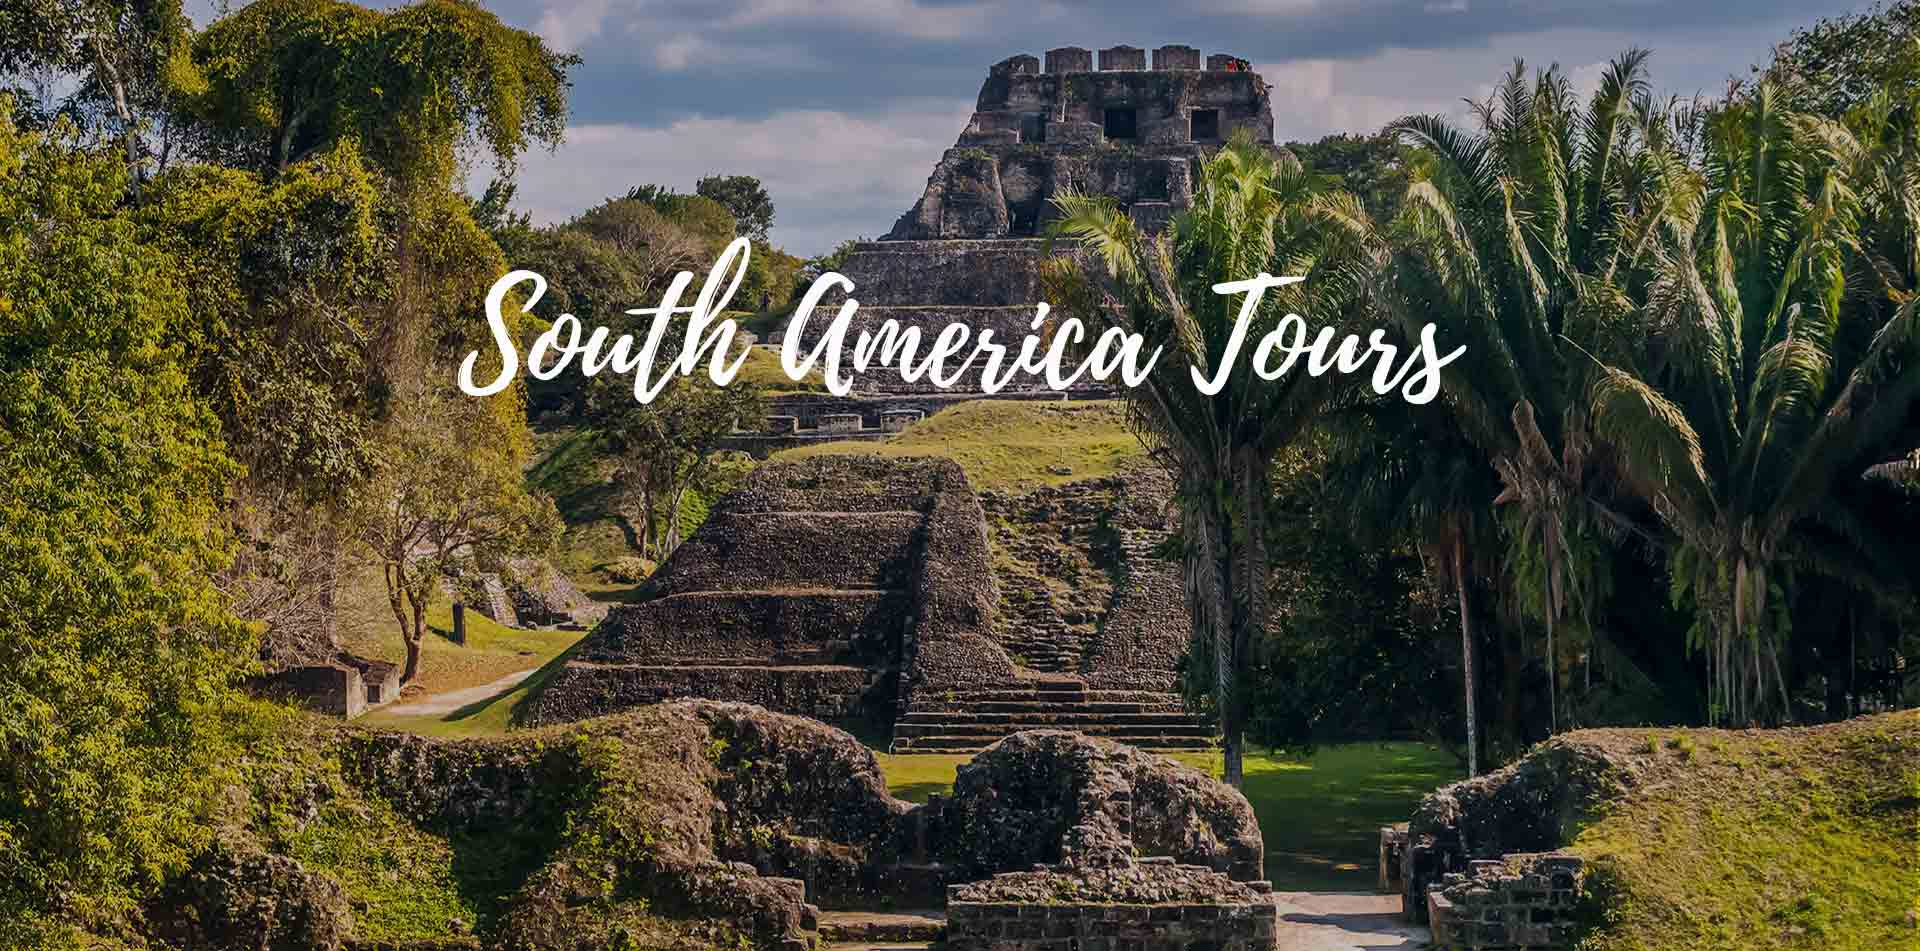 Central America Belize Cayo District Xunantunich Mayan Ruins South America tours - luxury vacation destinations